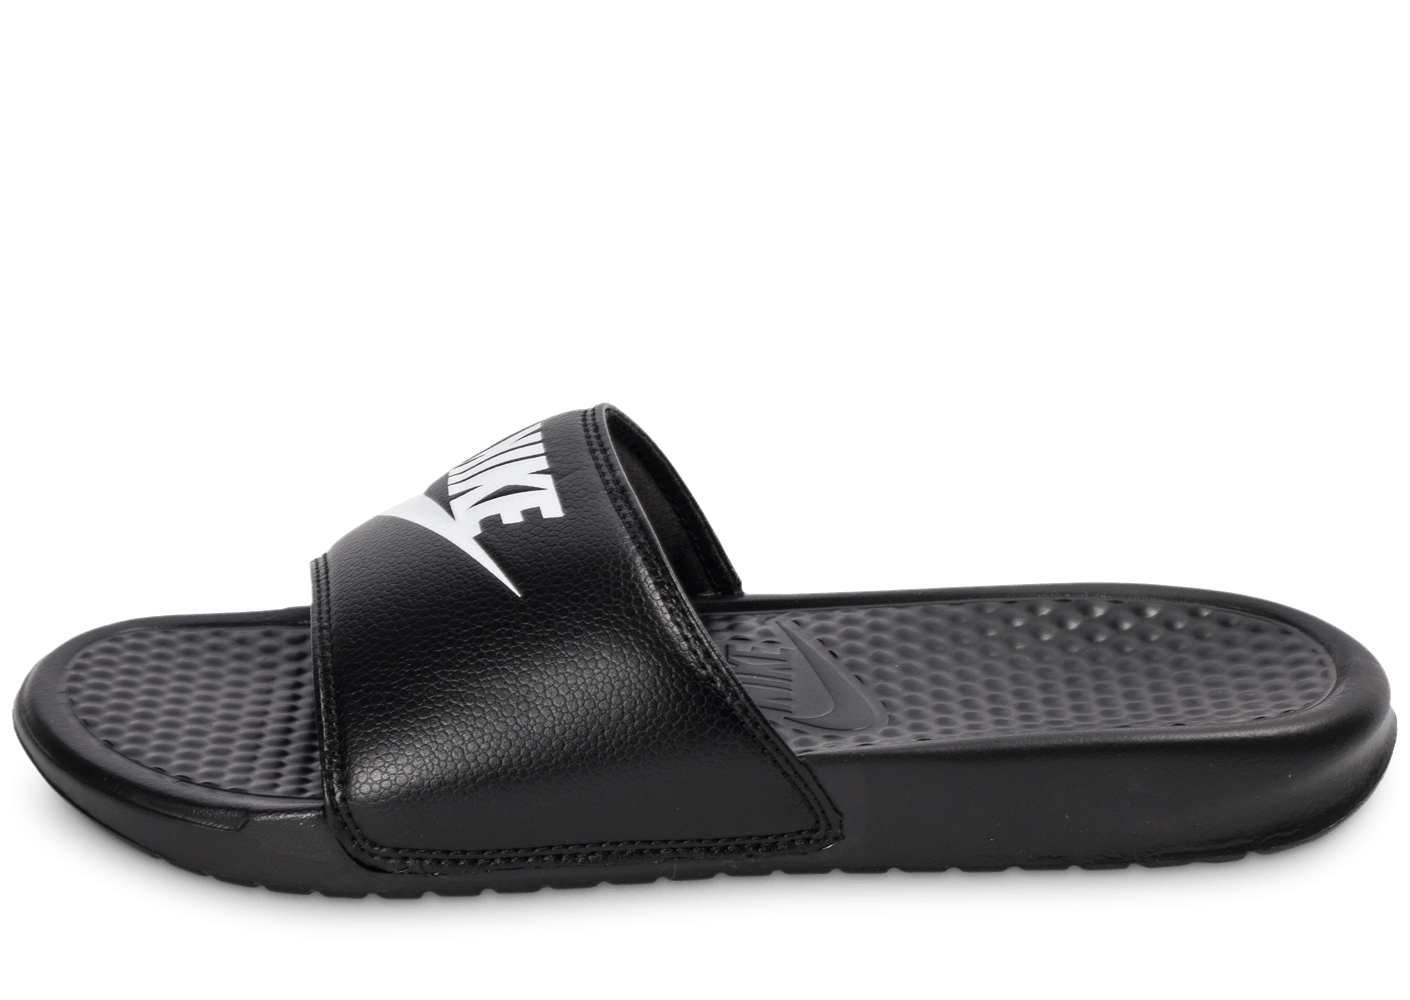 nike benassi just do it noire chaussures homme chausport. Black Bedroom Furniture Sets. Home Design Ideas